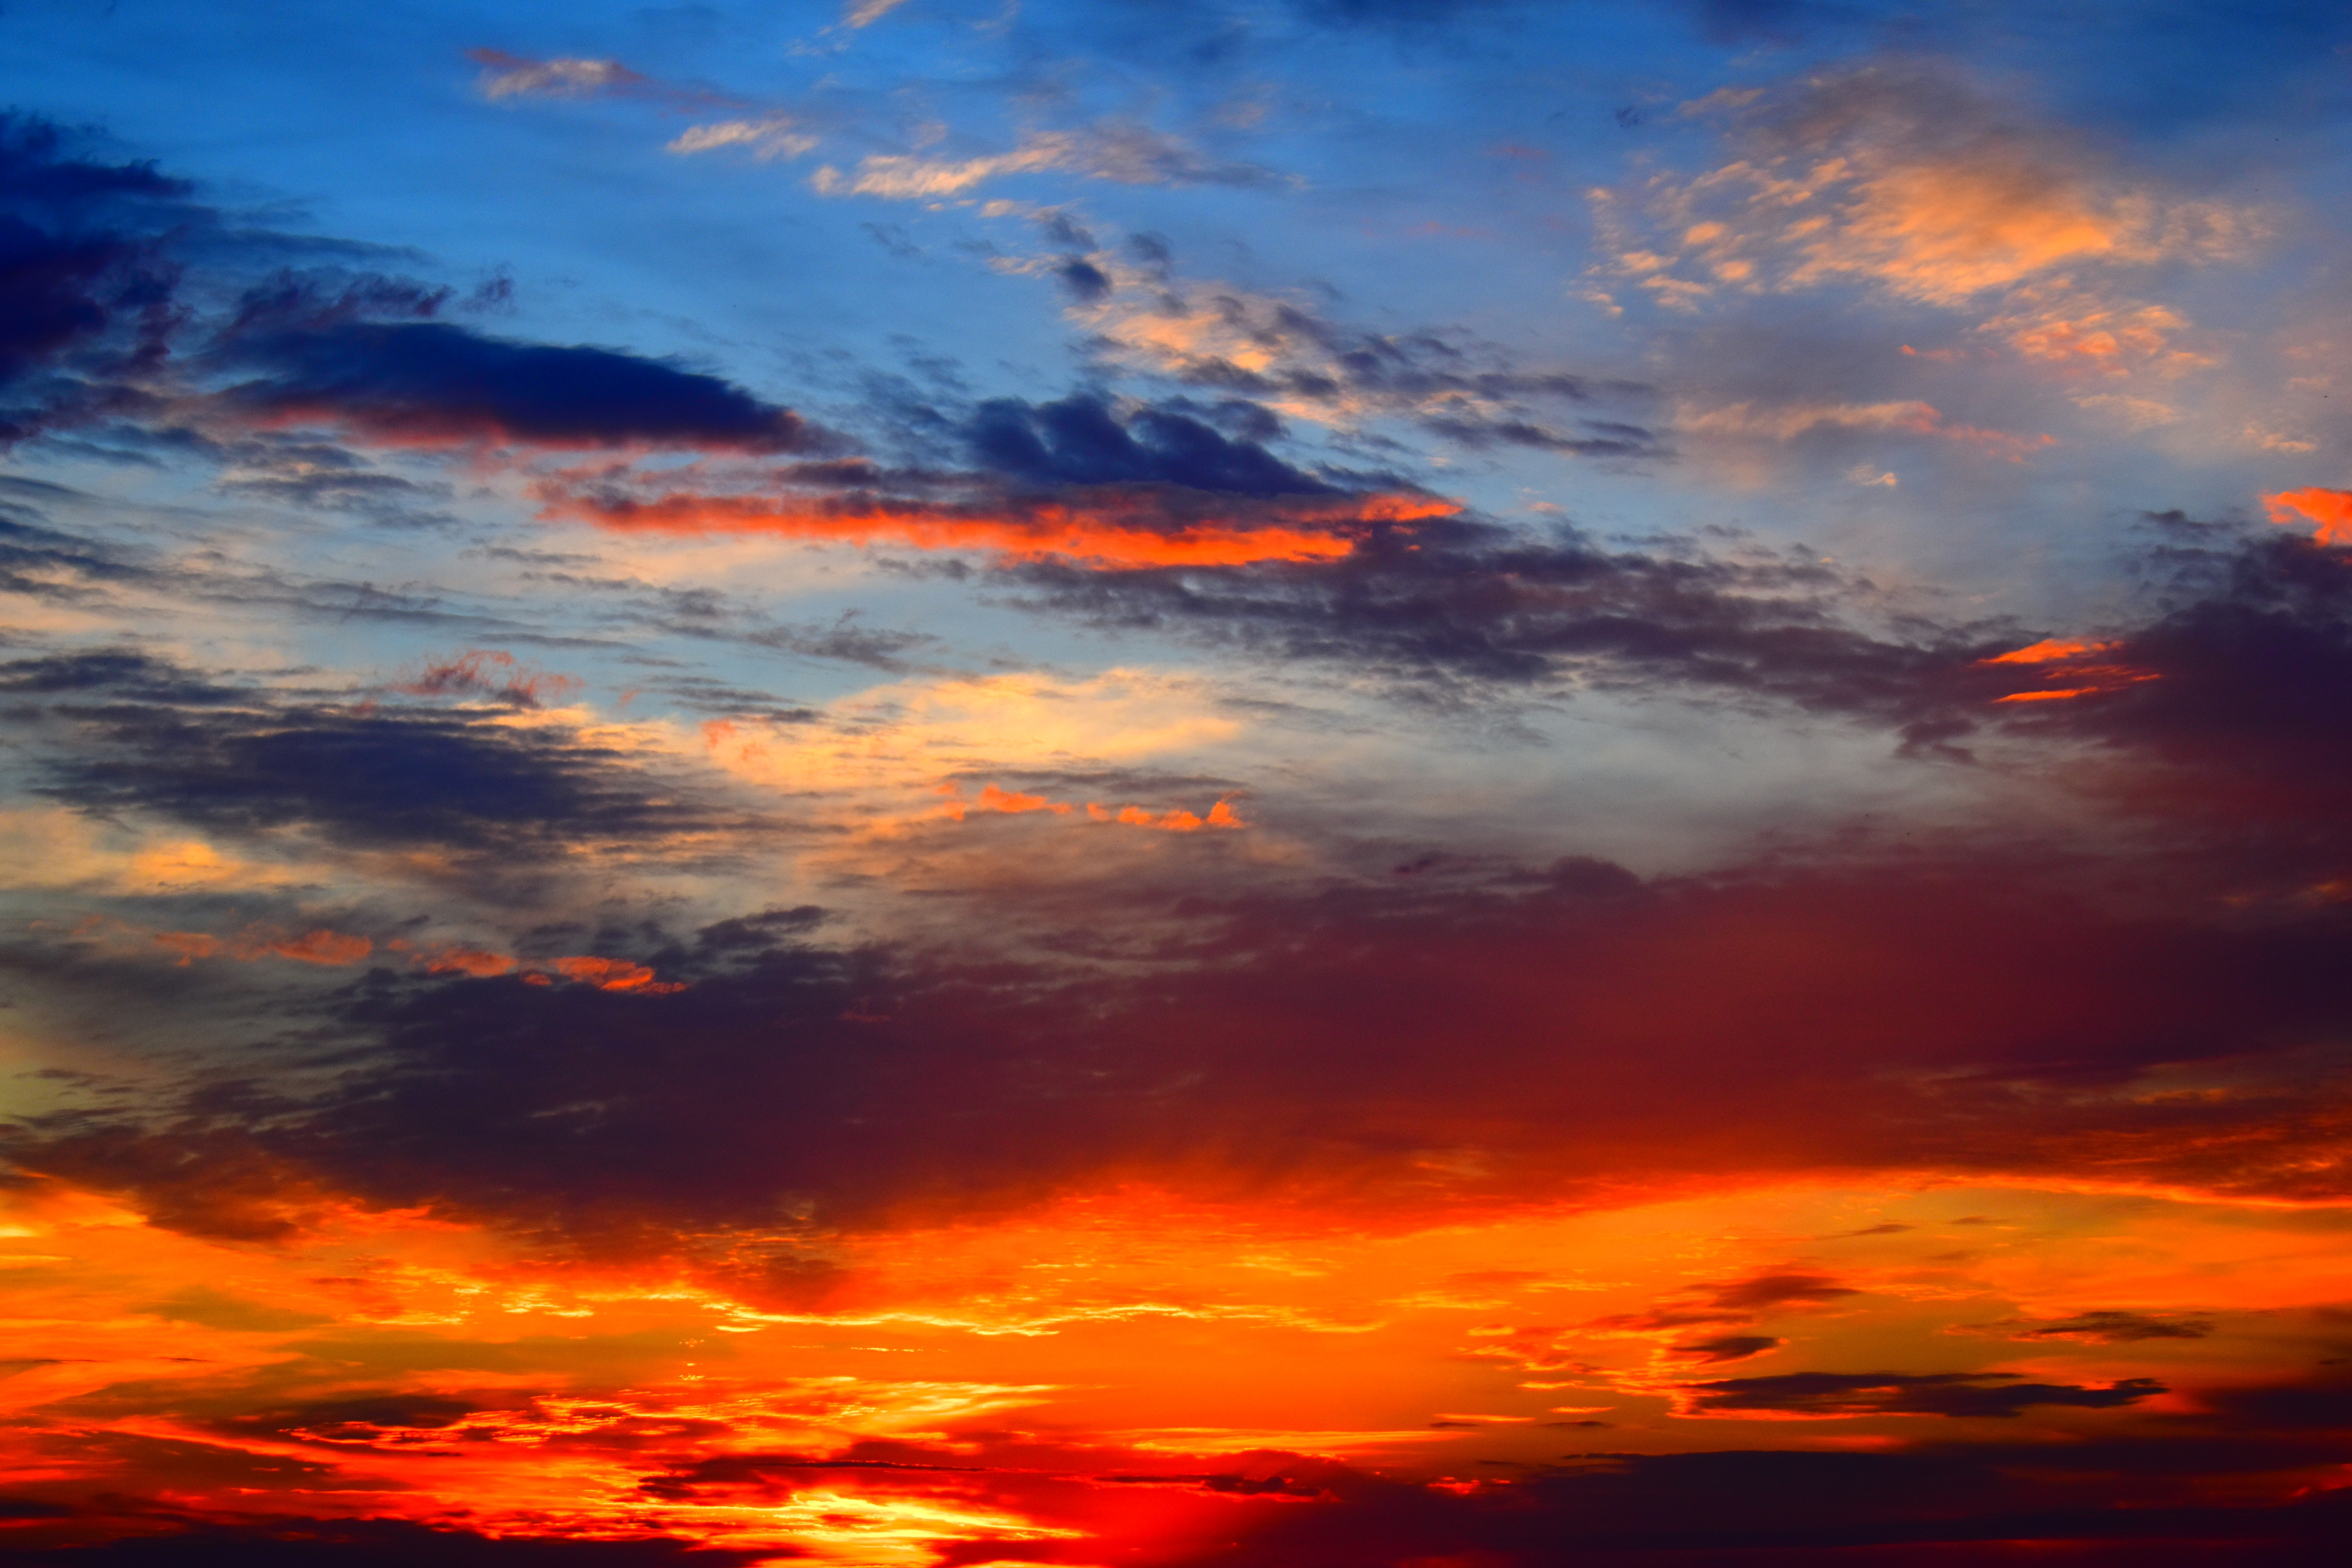 Wallpaper Sunset Sky Clouds Sunlight Bright Sunset Sky Images Hd 3005115 Hd Wallpaper Backgrounds Download